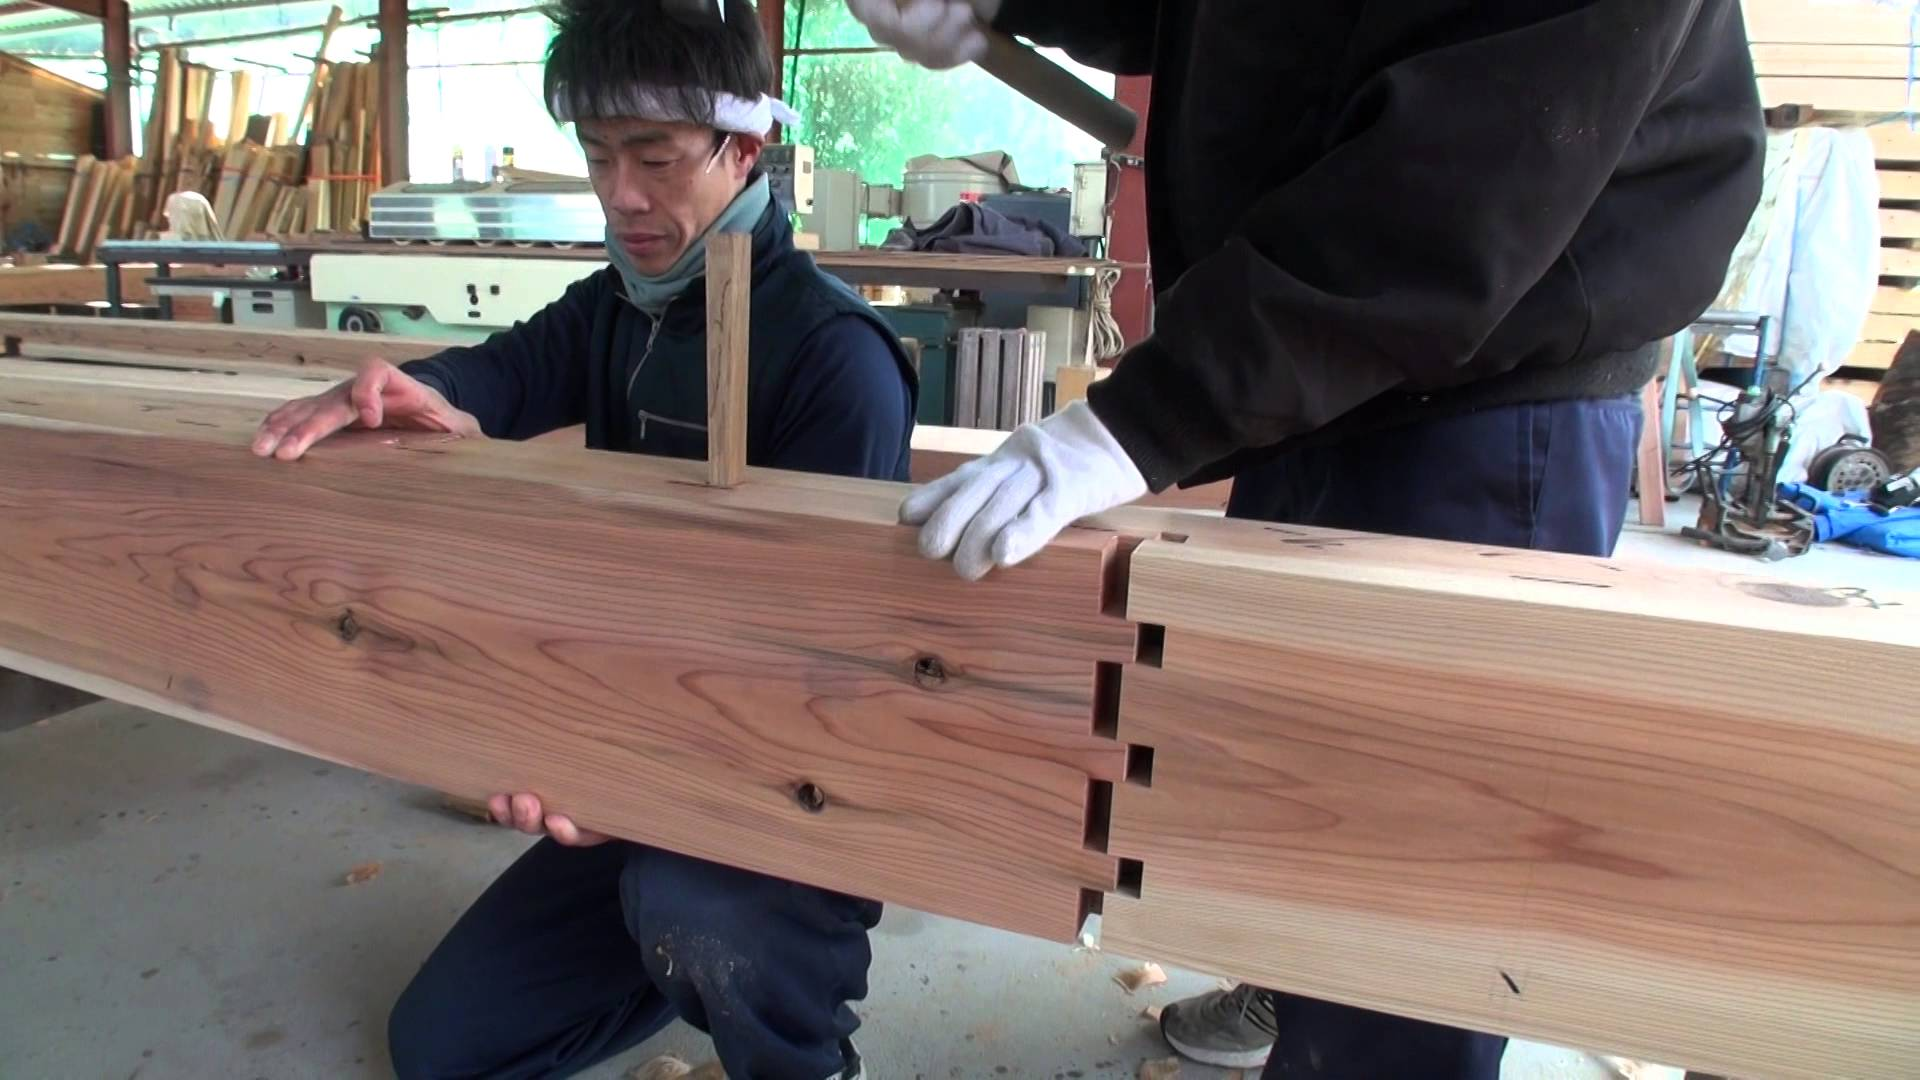 Traditional Japanese Carpenters Demonstrate How To Construct Durable  Buildings Without Using Nails